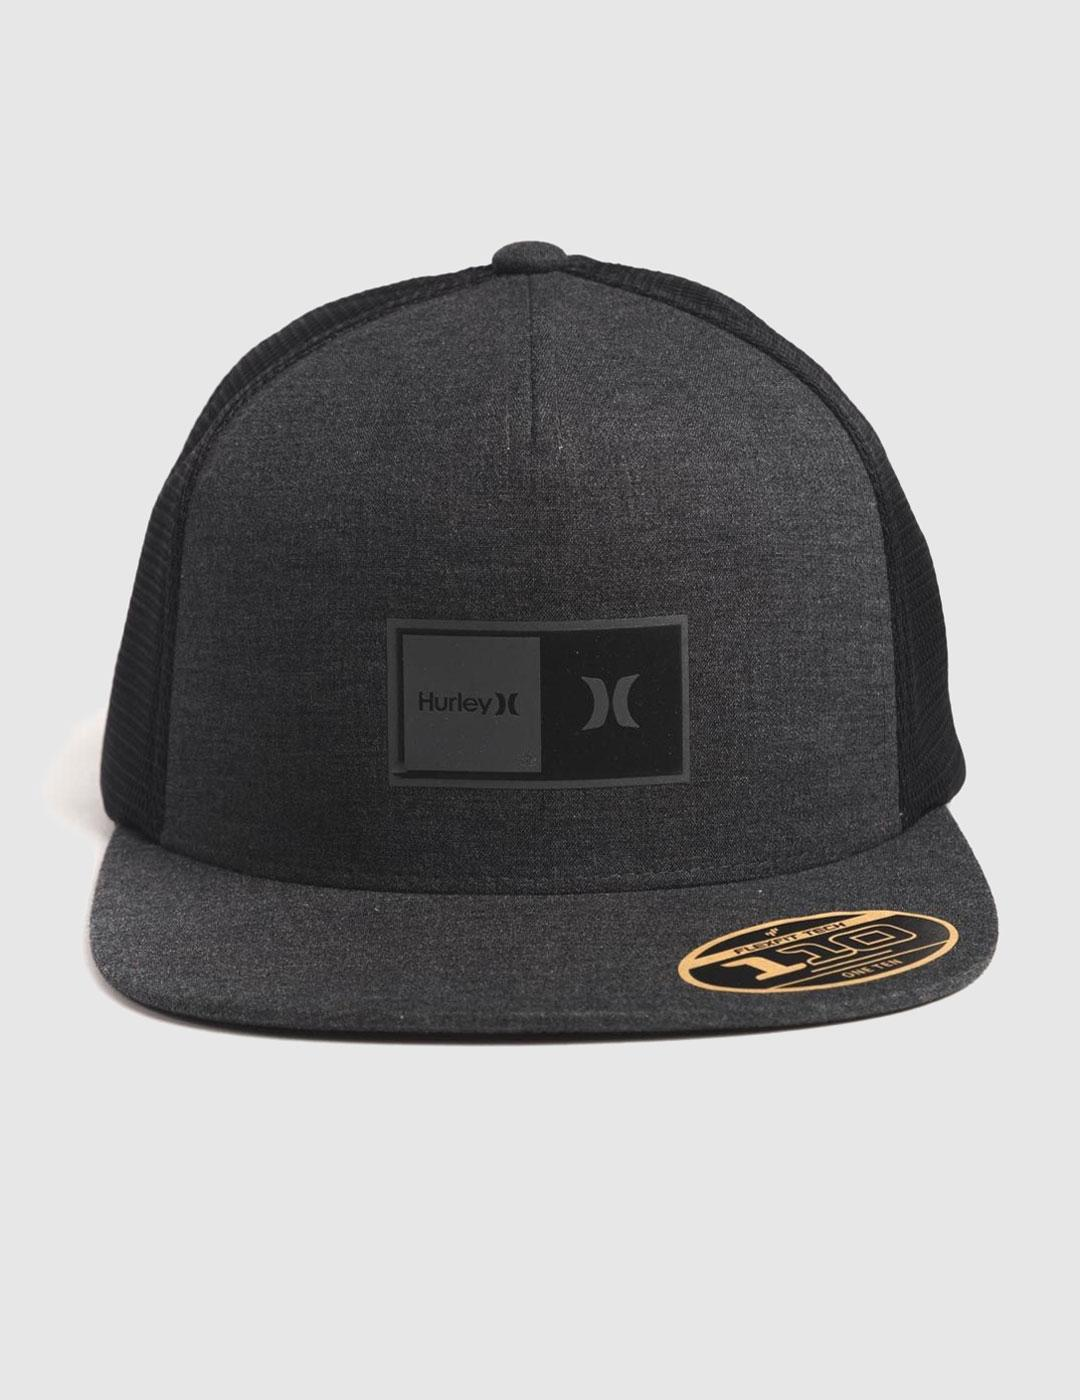 Gorra Hurley NATURAL 2.0 TRUCKER - Black Heather